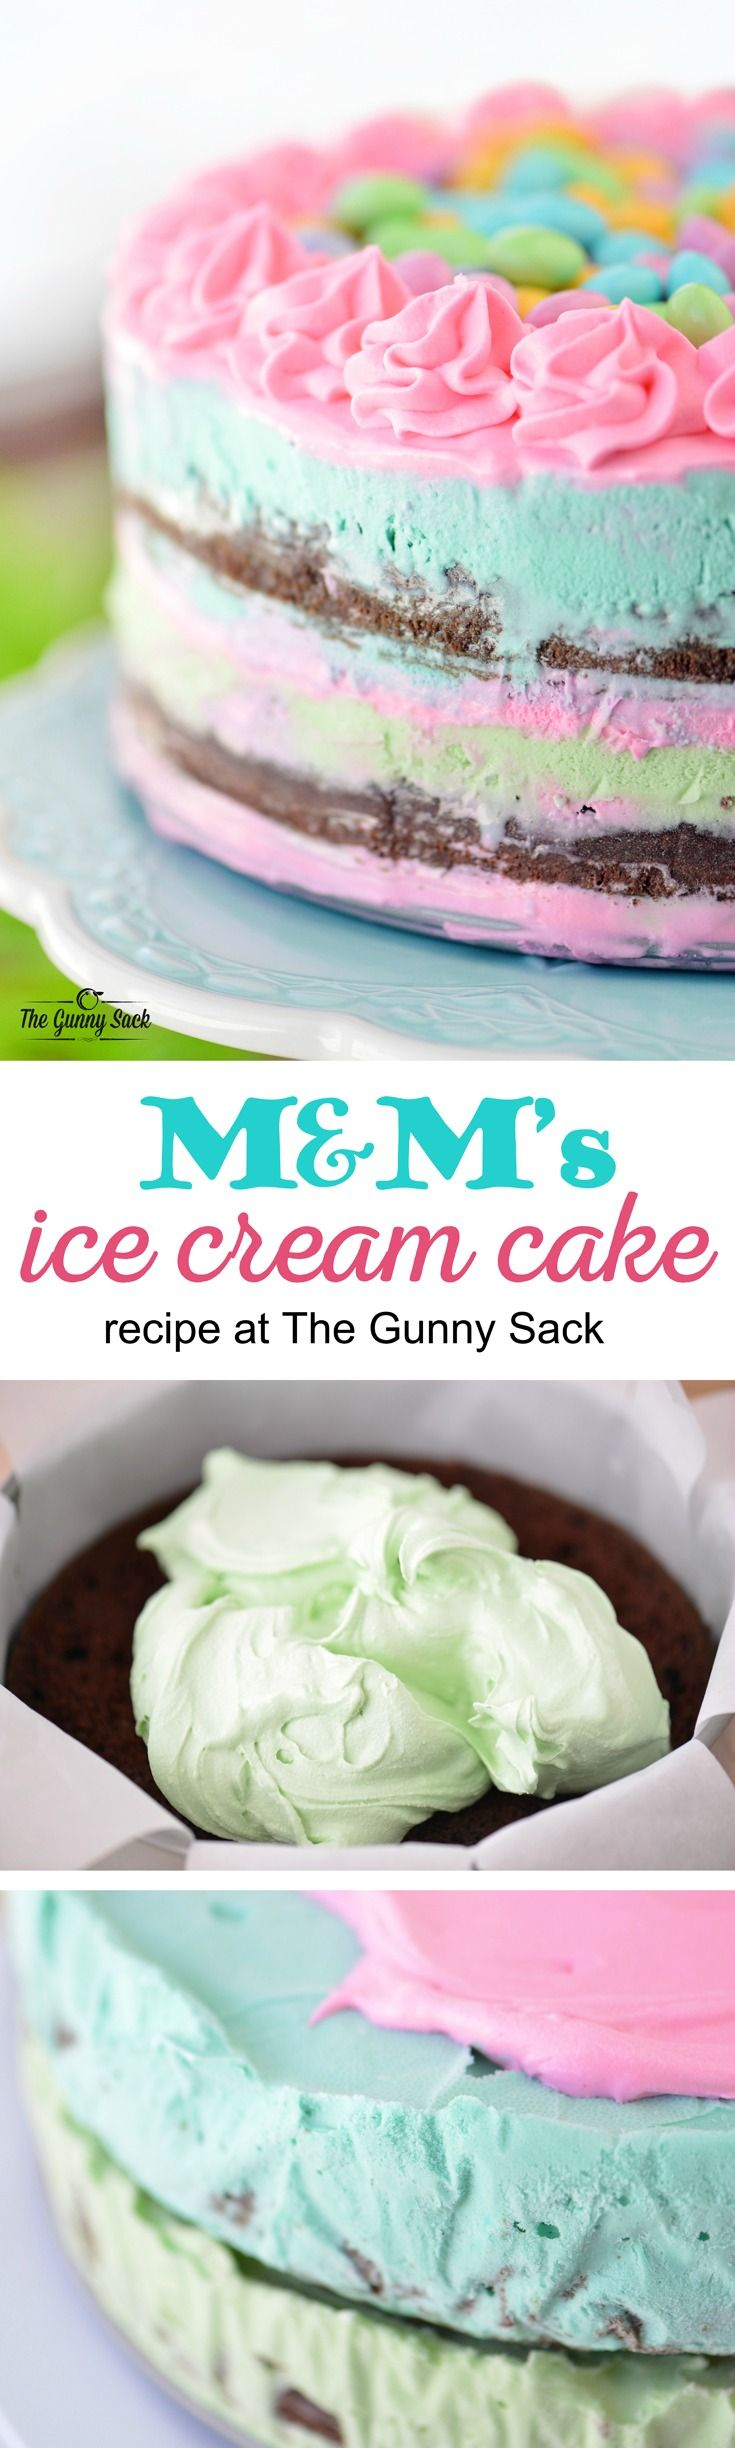 This M&M Ice Cream Cake recipe is perfect for spring celebrations! Try serving this Easter cake for dessert after your Easter dinner. #TargetCrowd #sponsored @Target